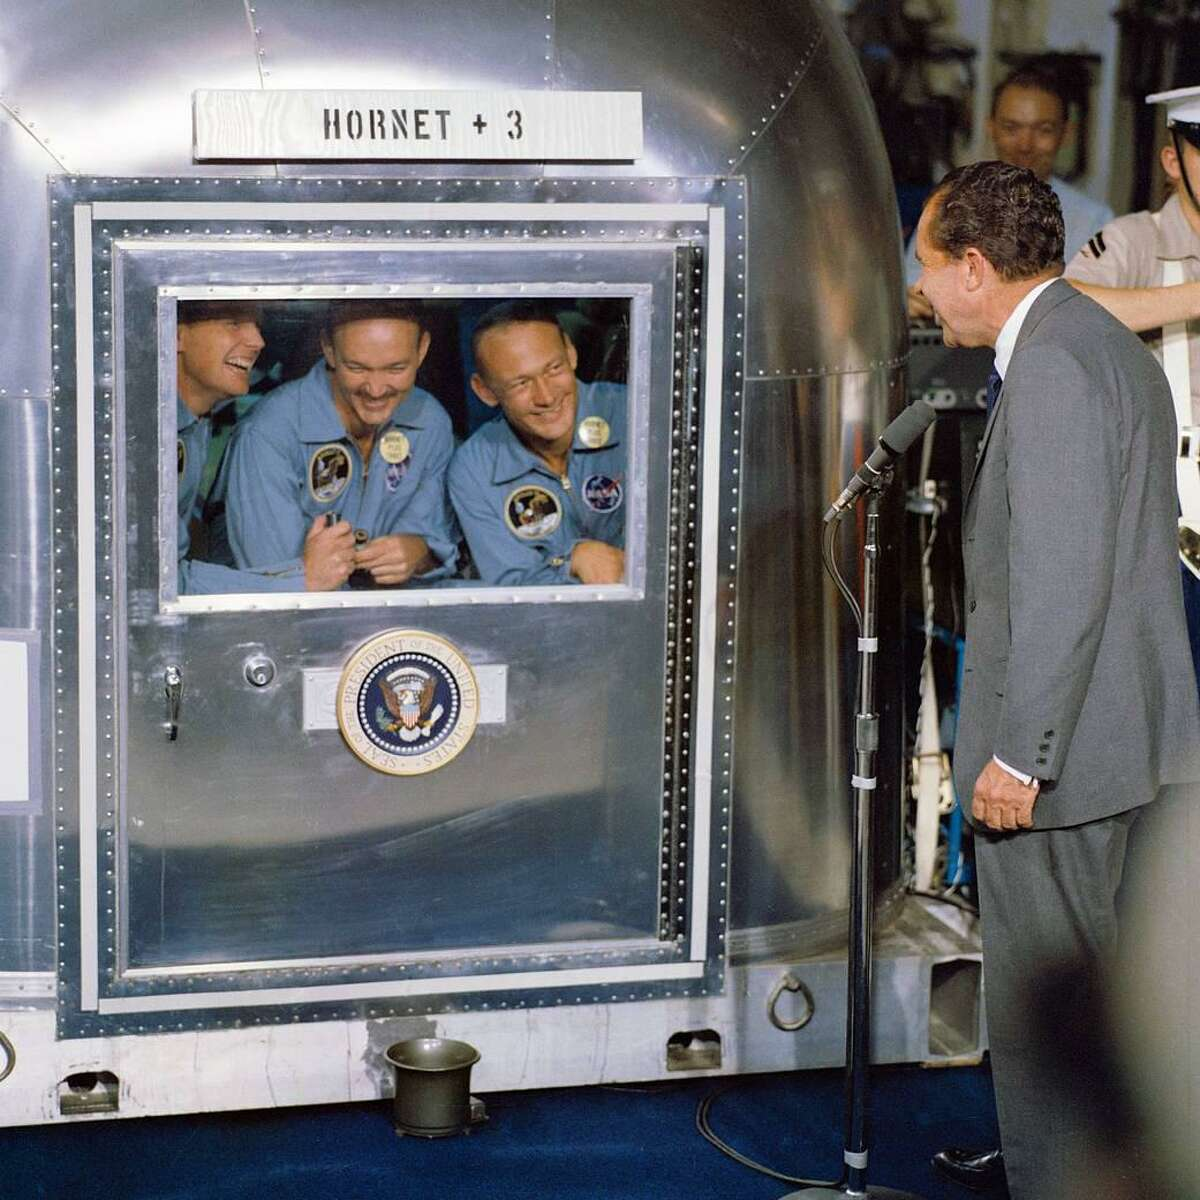 President Richard M. Nixon was in the central Pacific recovery area to welcome the Apollo 11 astronauts aboard the USS Hornet, prime recovery ship for the historic Apollo 11 lunar landing mission. Already confined to the Mobile Quarantine Facility are (left to right) Neil A. Armstrong, commander; Michael Collins, command module pilot; and Edwin E. Aldrin Jr., lunar module pilot. Apollo 11 splashed down at 11:49 a.m. (CDT), July 24, 1969, about 812 nautical miles southwest of Hawaii and only 12 nautical miles from the USS Hornet.